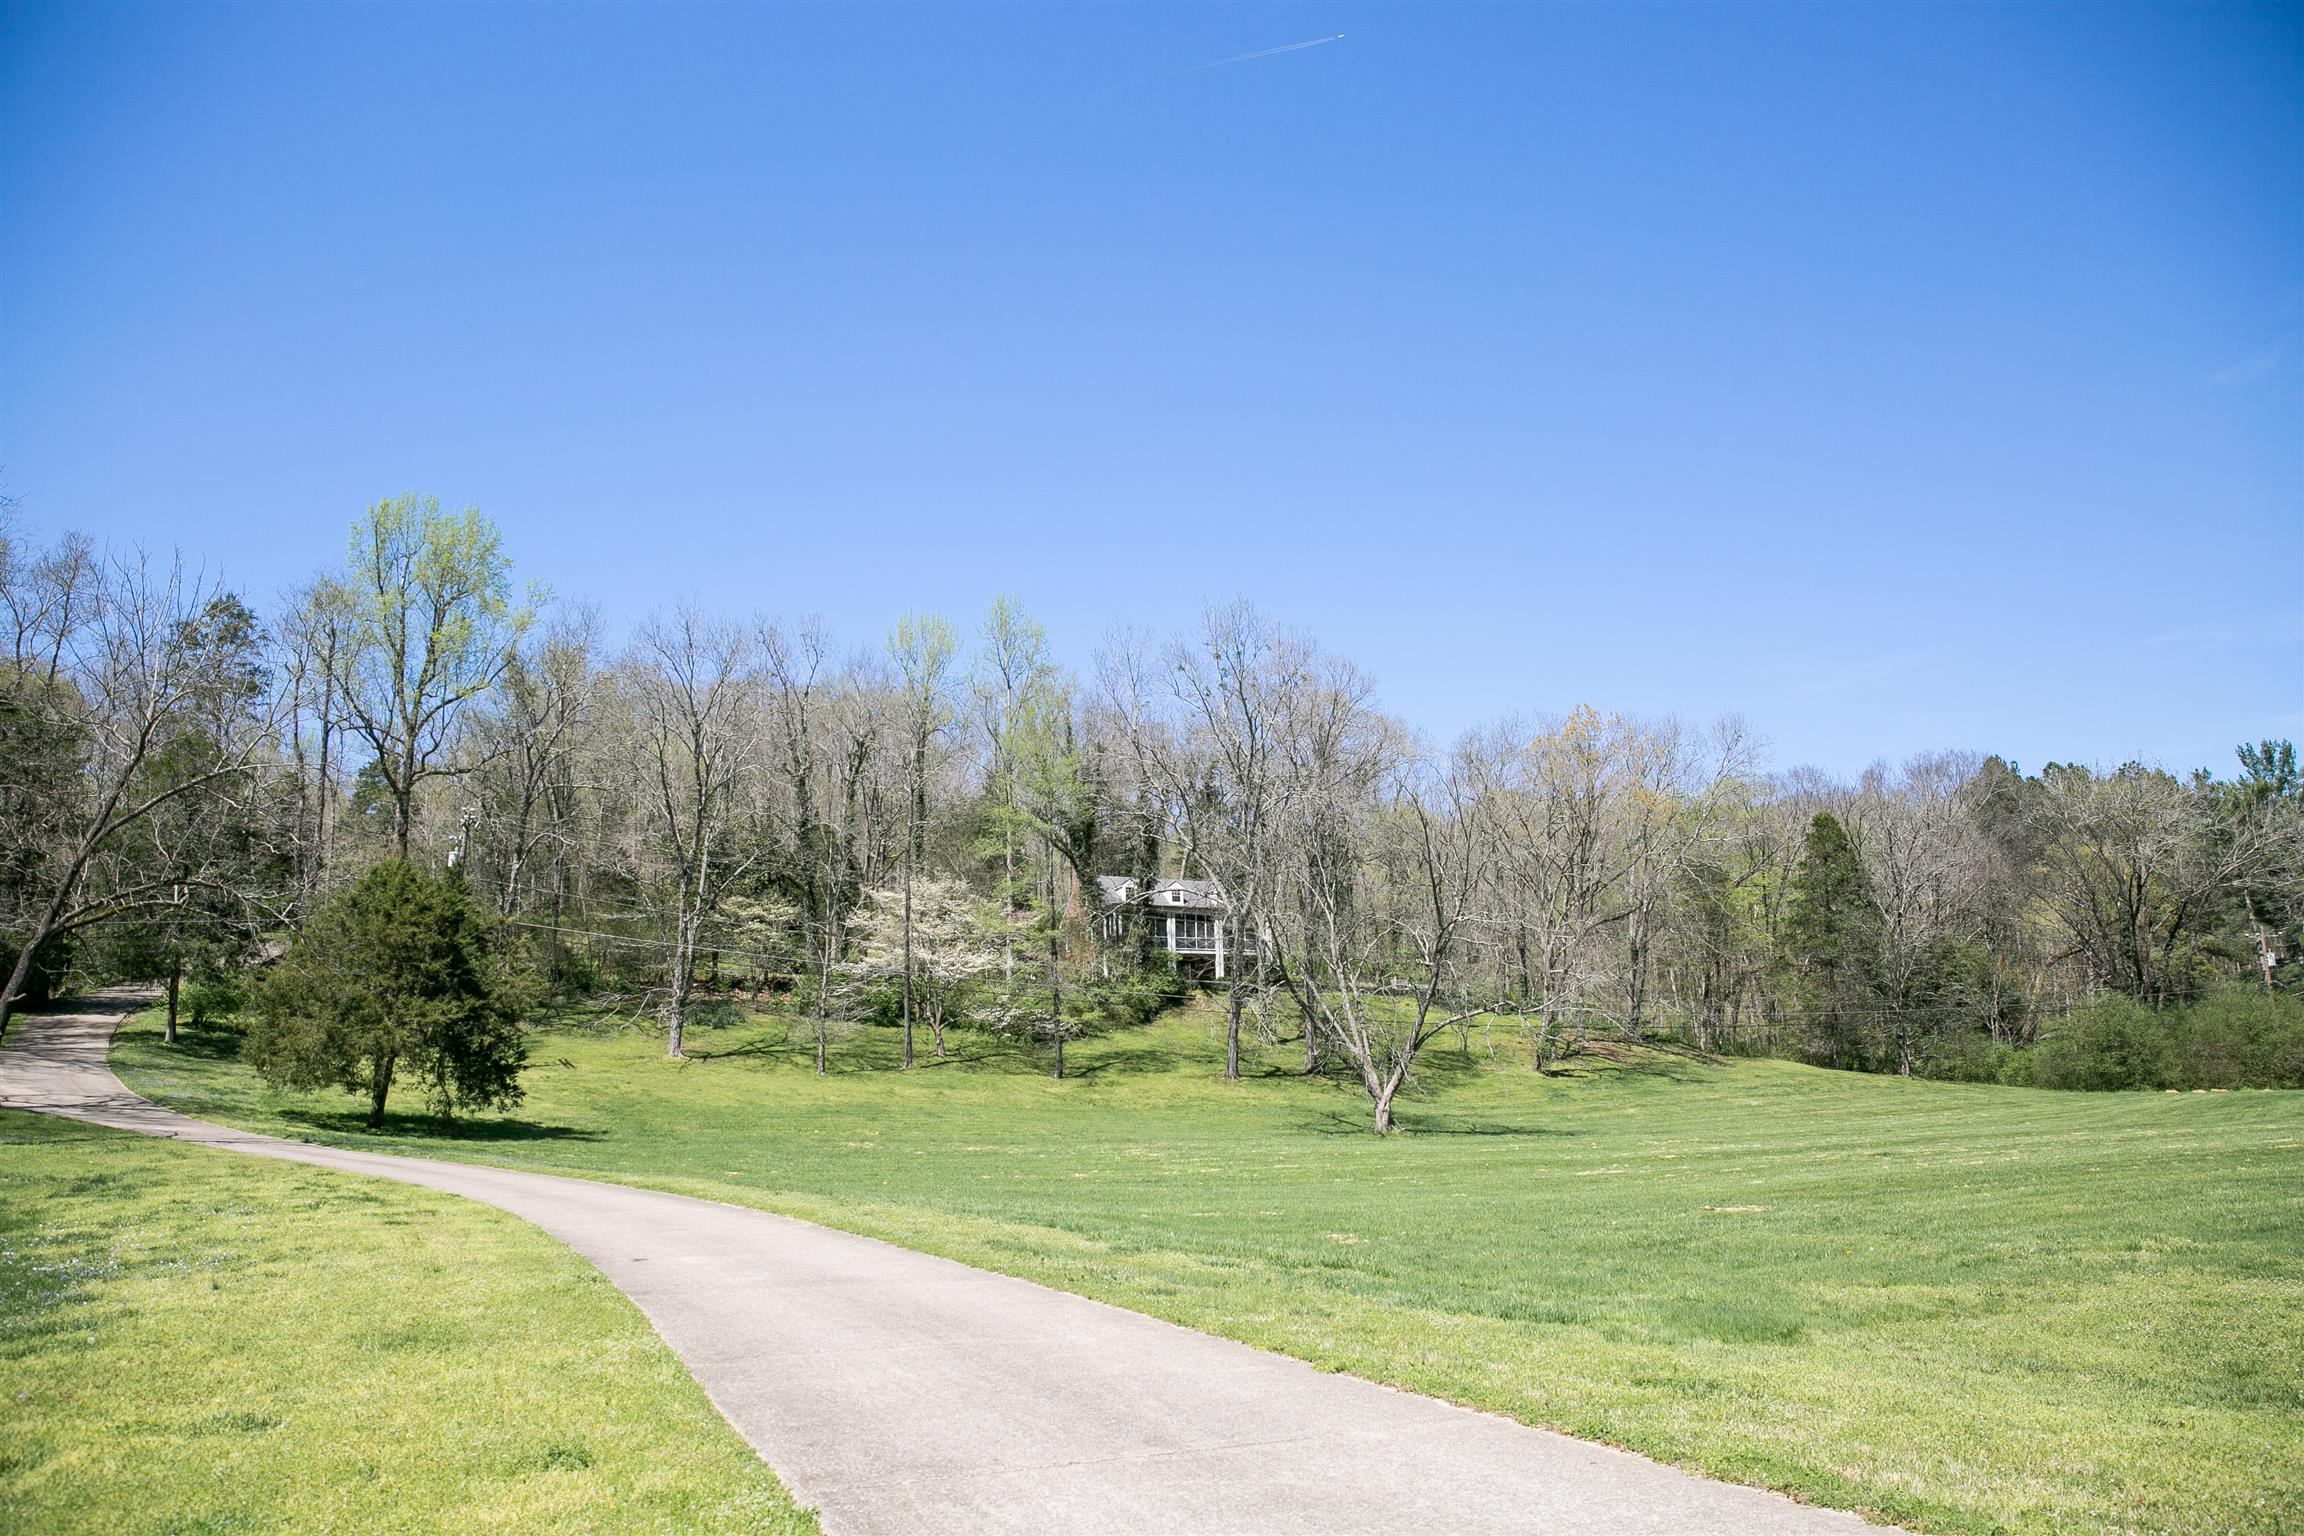 7606 Buffalo Rd, Bellevue, Tennessee